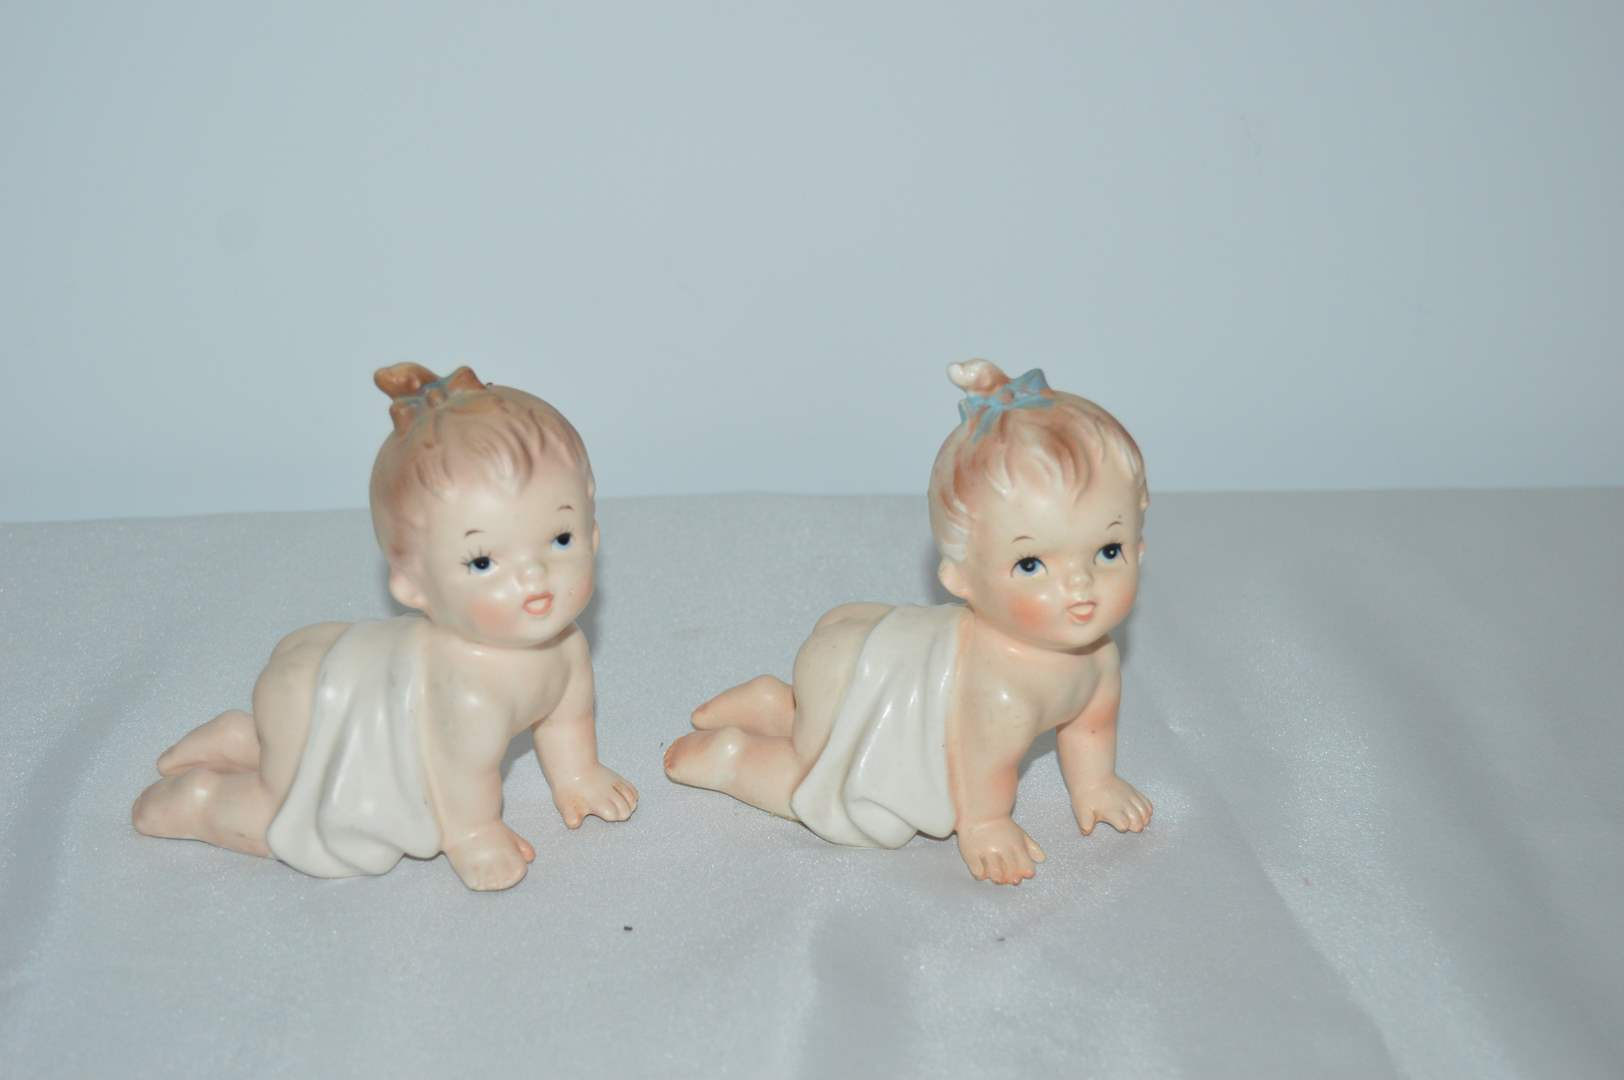 Lot # 75 Antique Inarco crawling baby figurines - Set of 2 (main image)